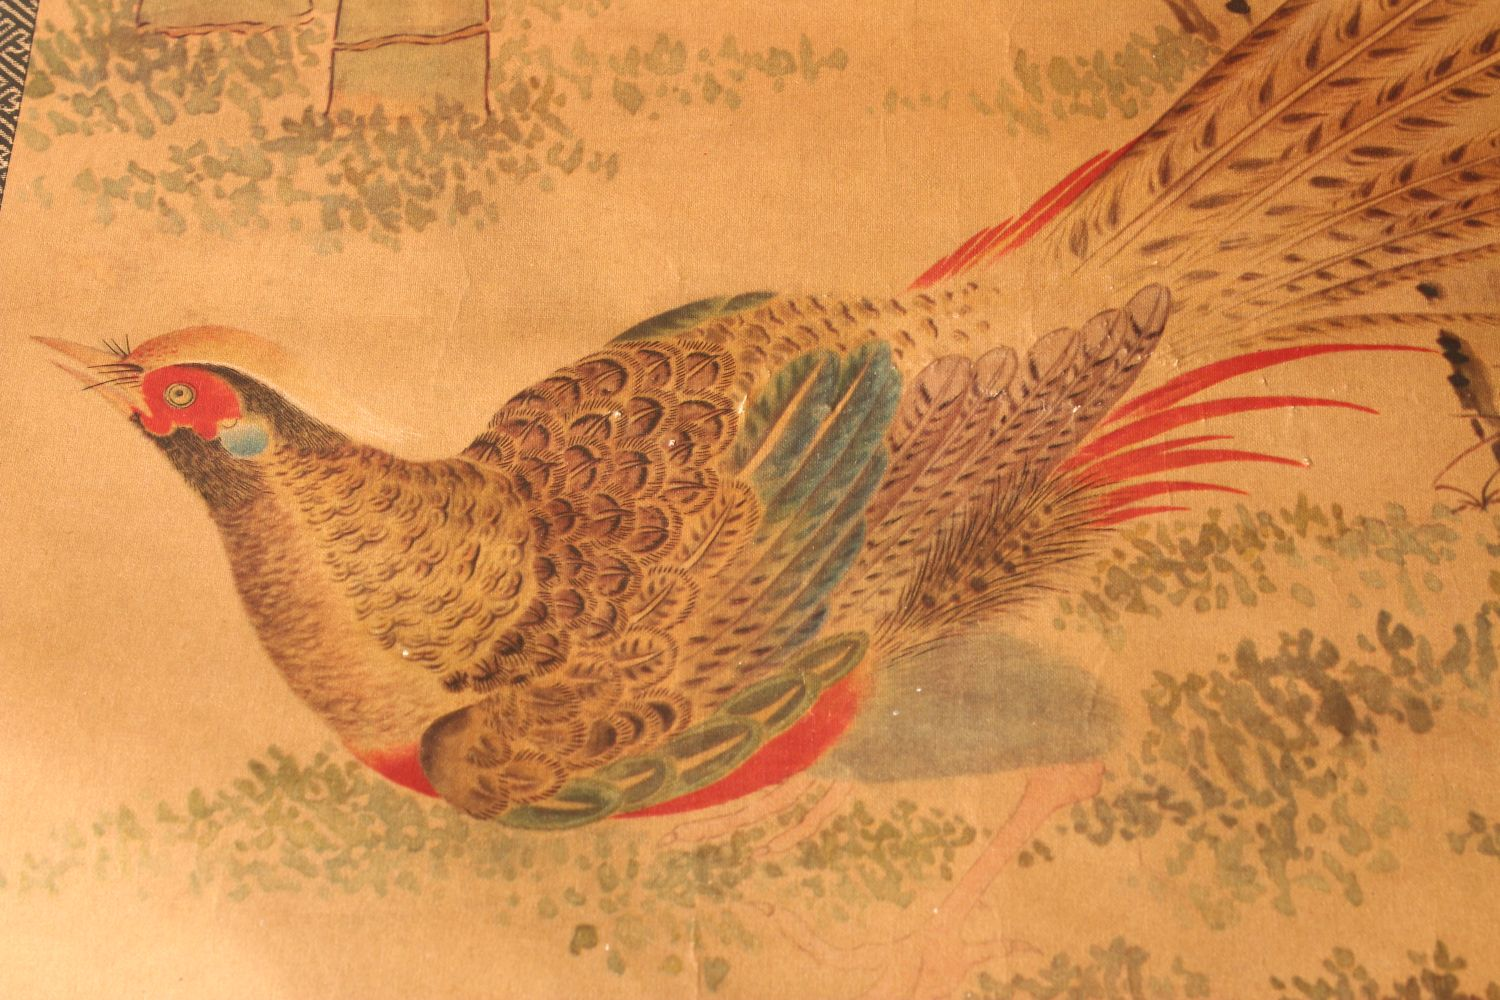 A 20TH CENTURY CHINESE PRINTED HANGING SCROLL PICTURE, depicting pheasants and other birds, 150cm - Image 4 of 4